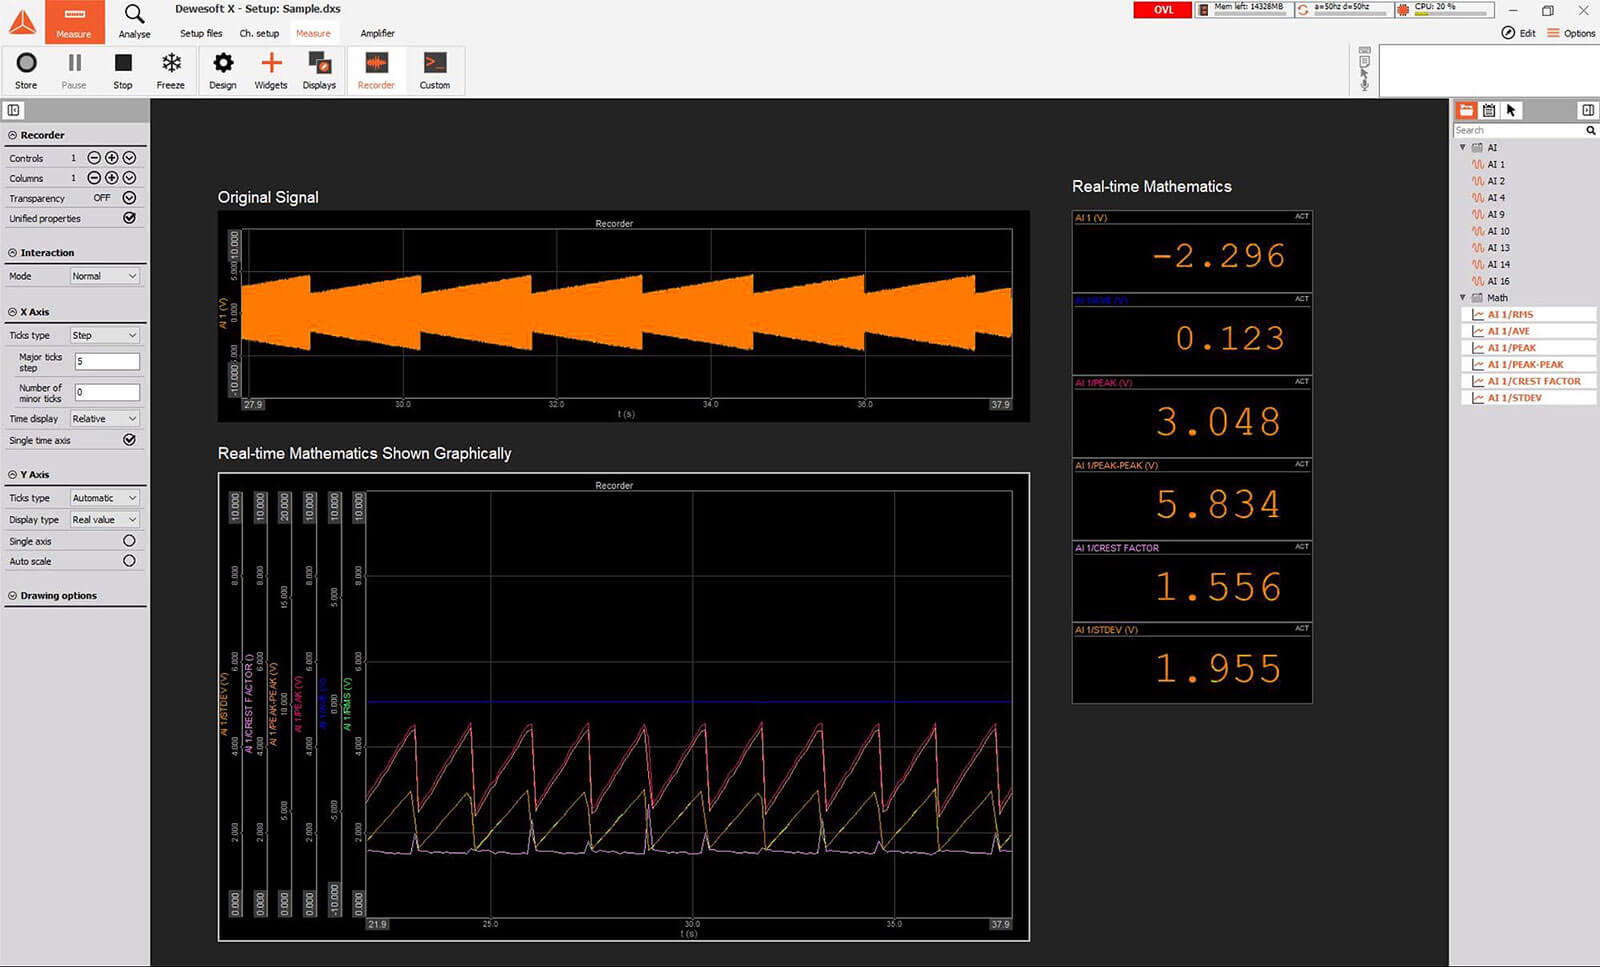 Dewesoft X display showing real waveform (top) and statistical values in the chart below and in the digital meters